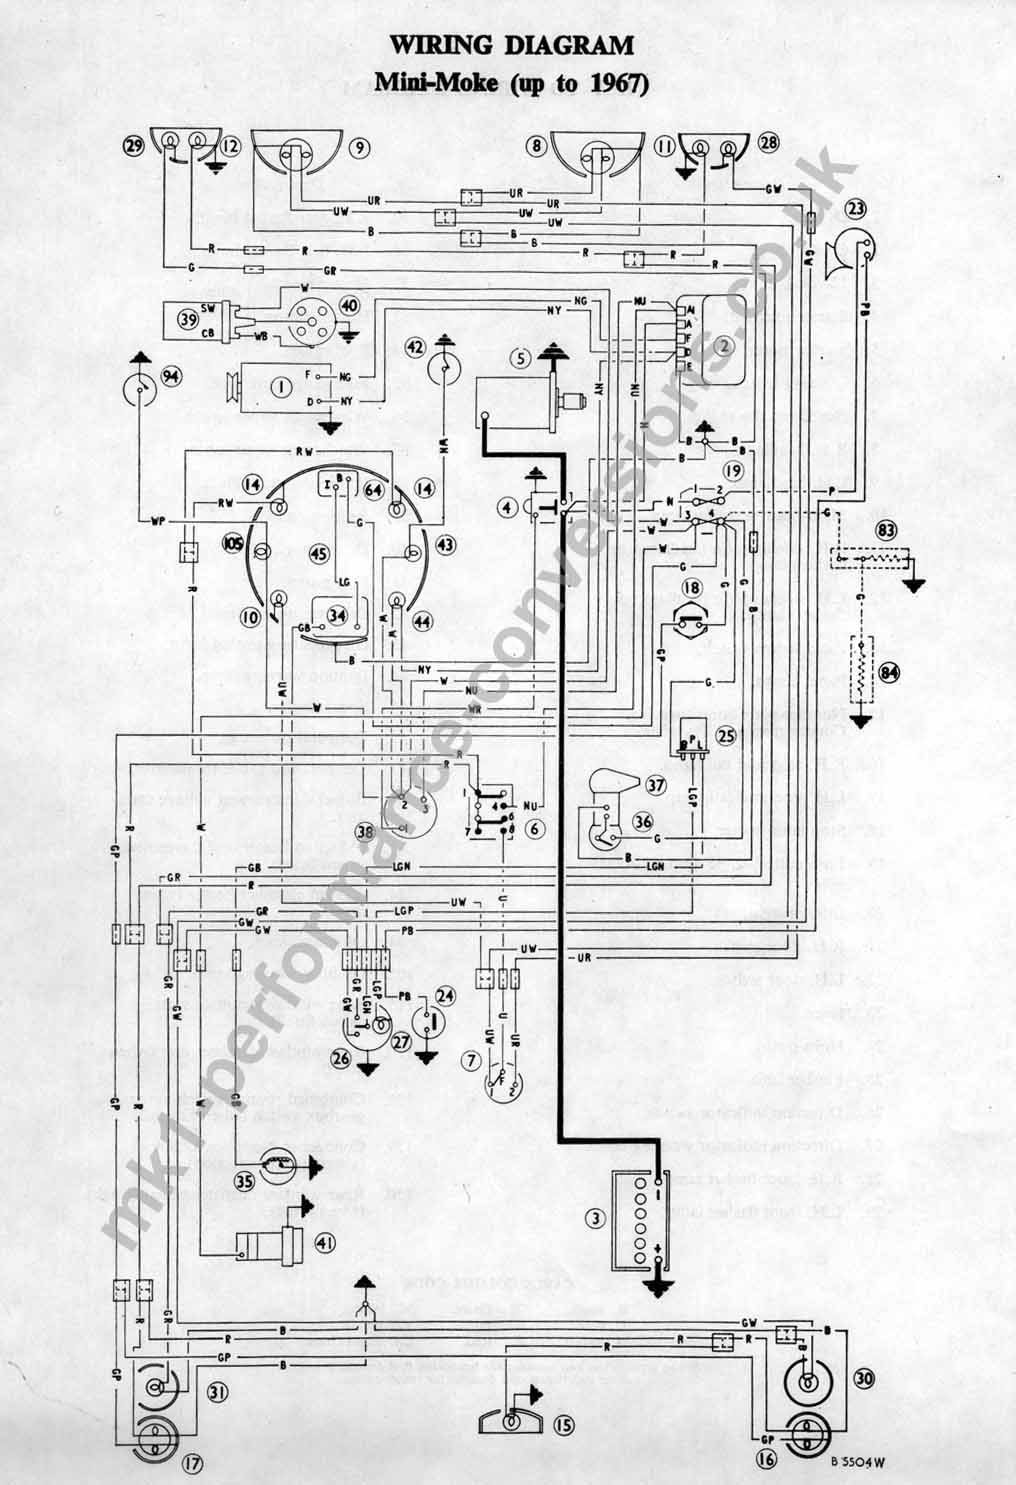 mk1_moke_wiring classic mini morris minor wiring diagram pdf at soozxer.org